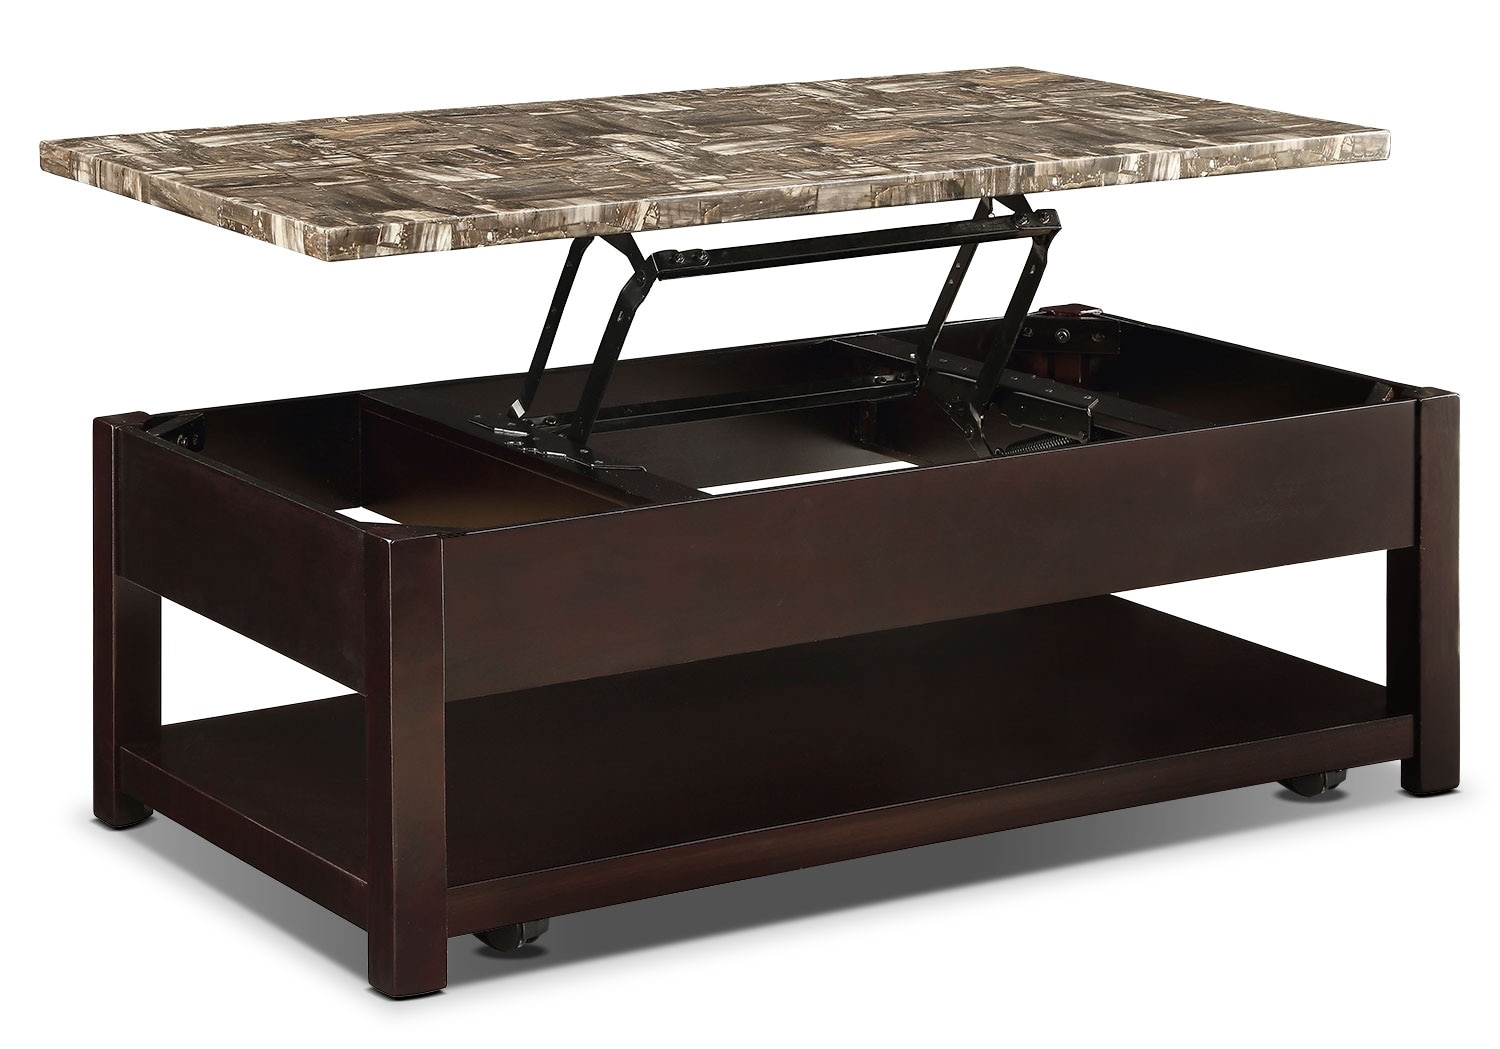 Sicily Coffee Table With Lift Top And Casters Brown United Furniture Warehouse